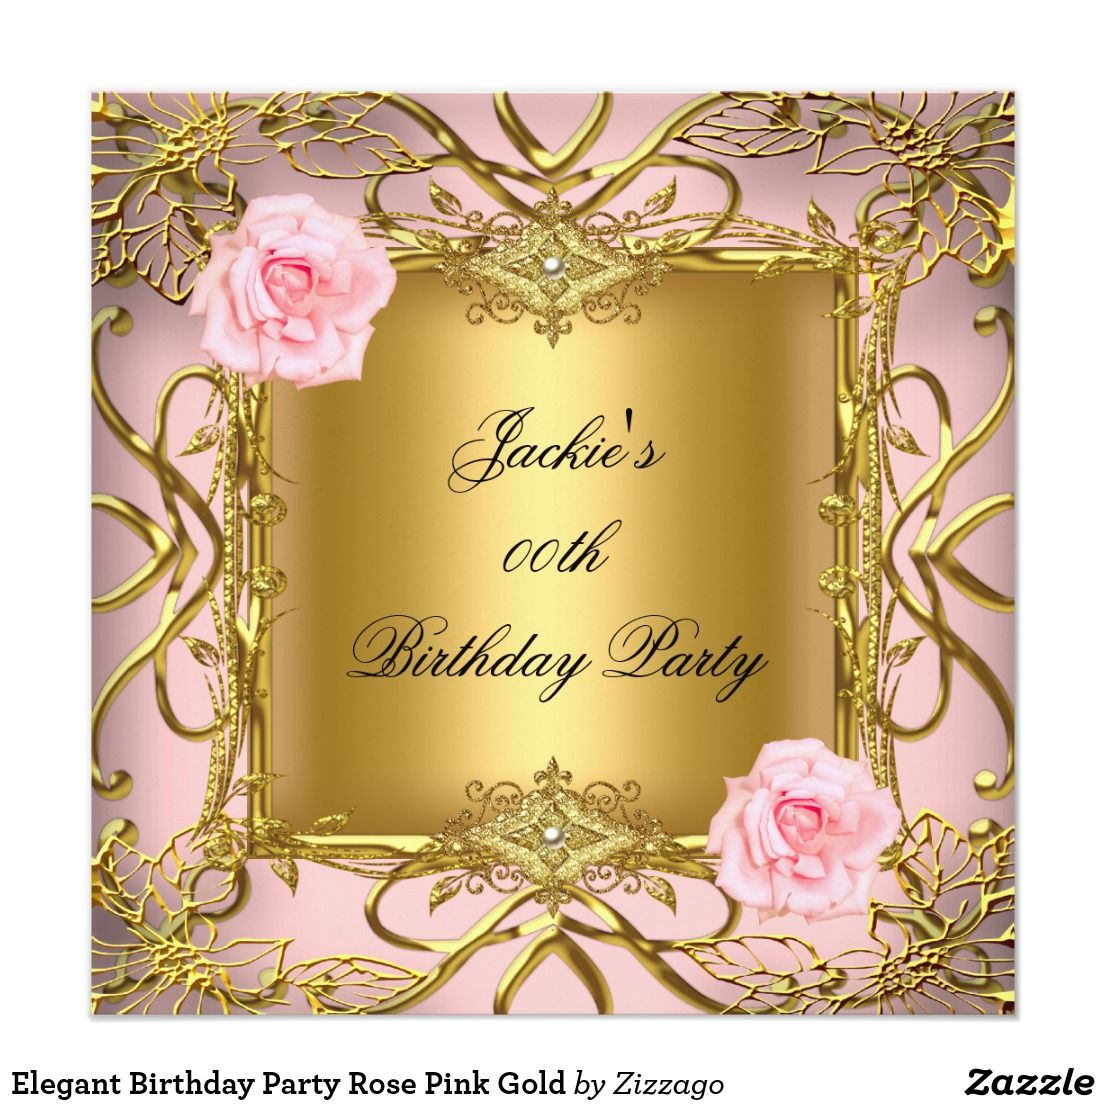 Elegant Birthday Party Rose Pink Gold Card Invite Invitation Modern Simple Clean Design Adult